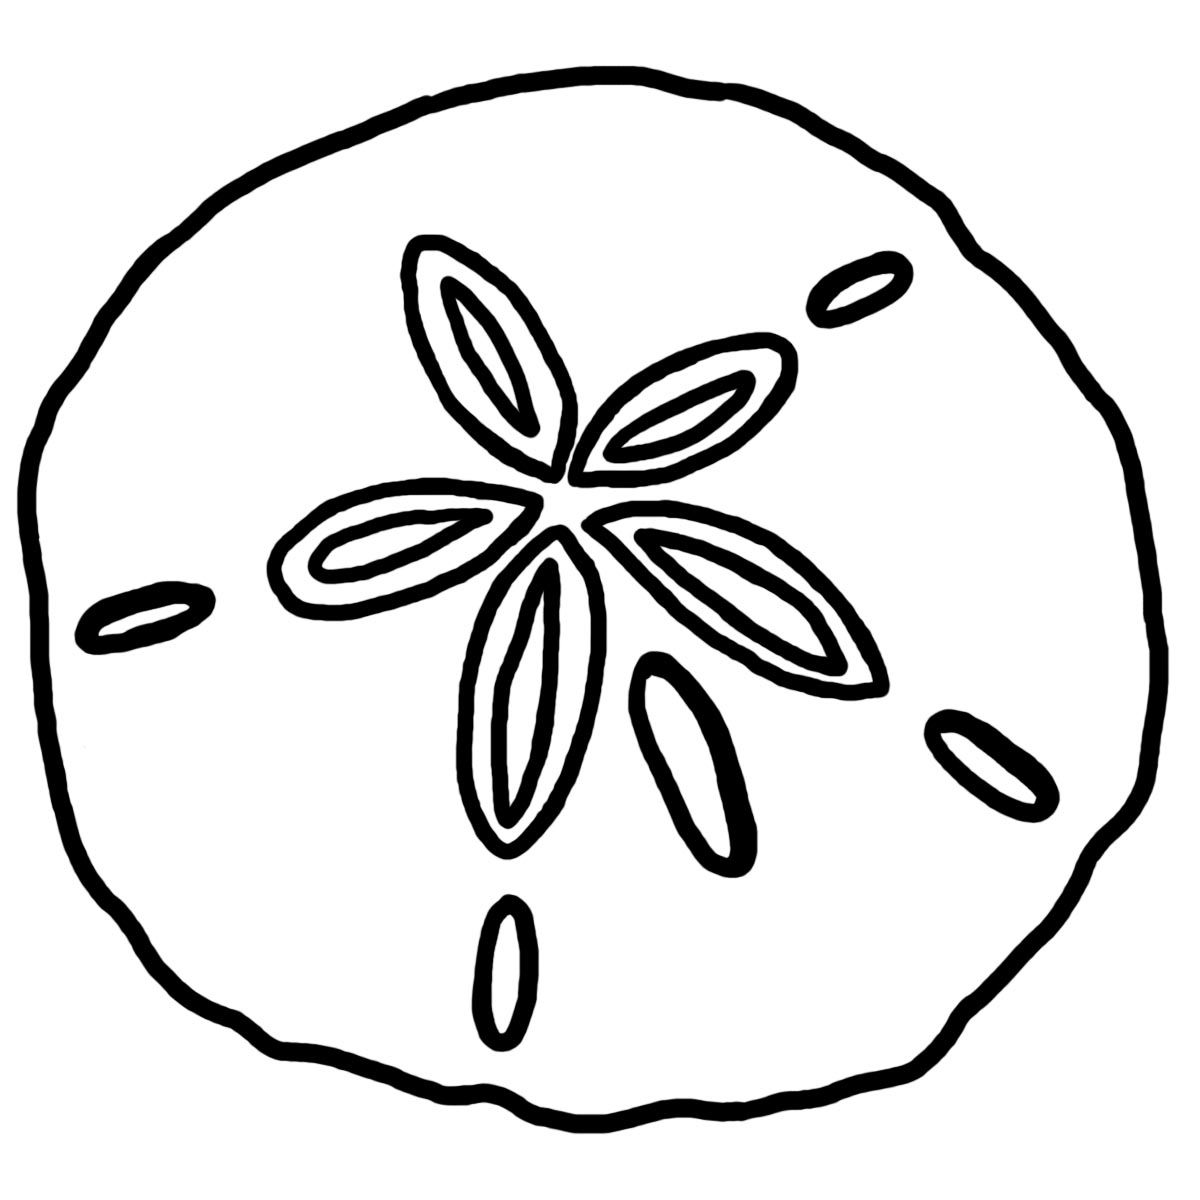 sand coloring pages - photo#31